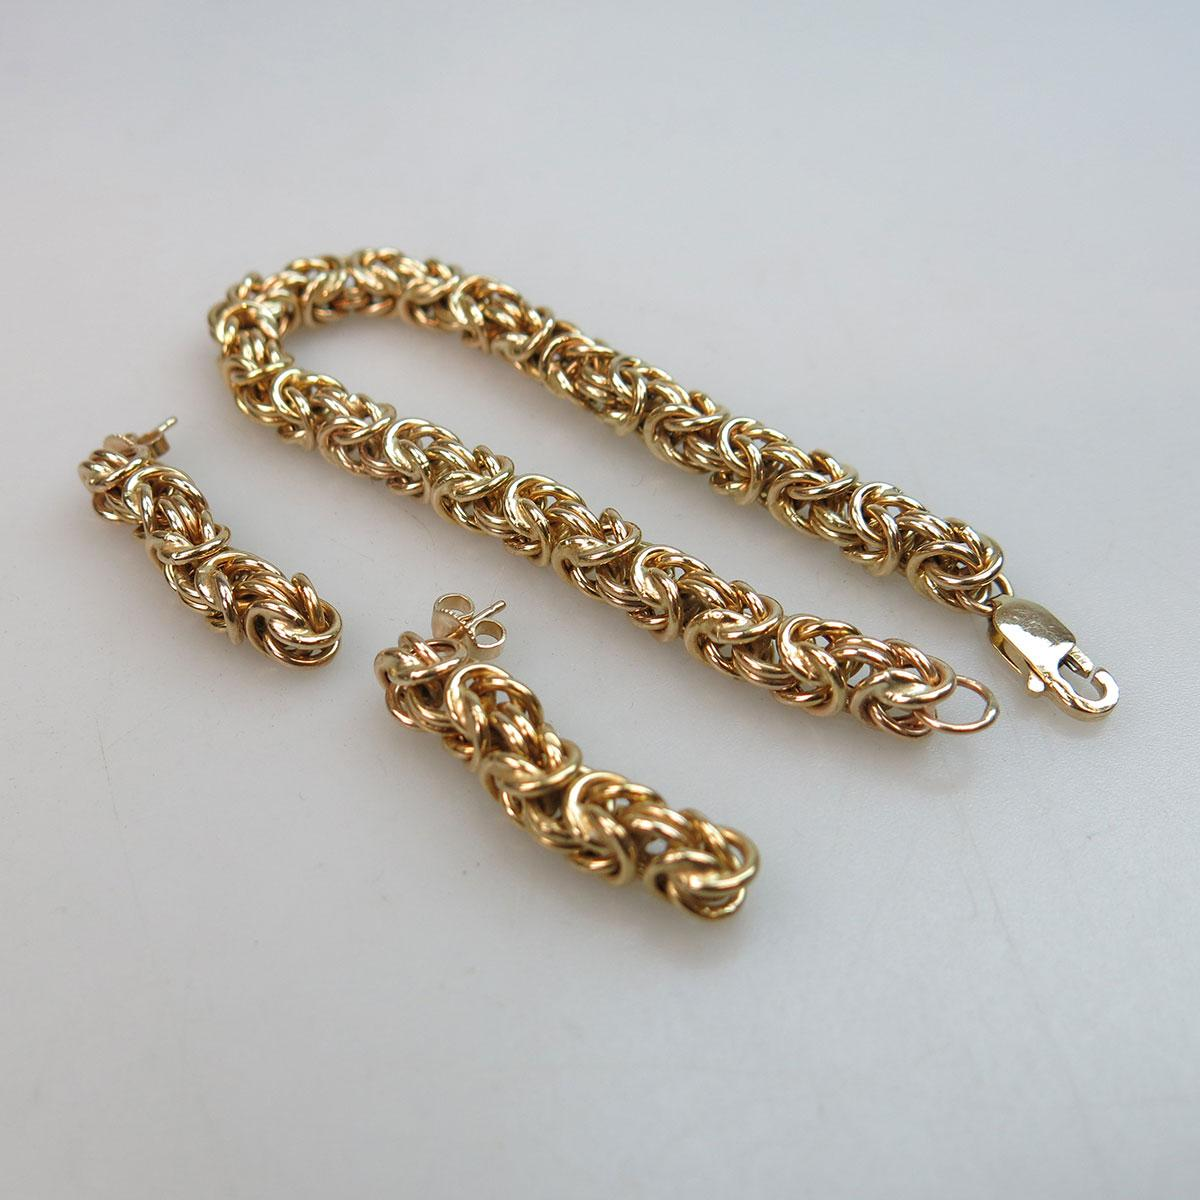 14k Yellow Gold King's Link Bracelet